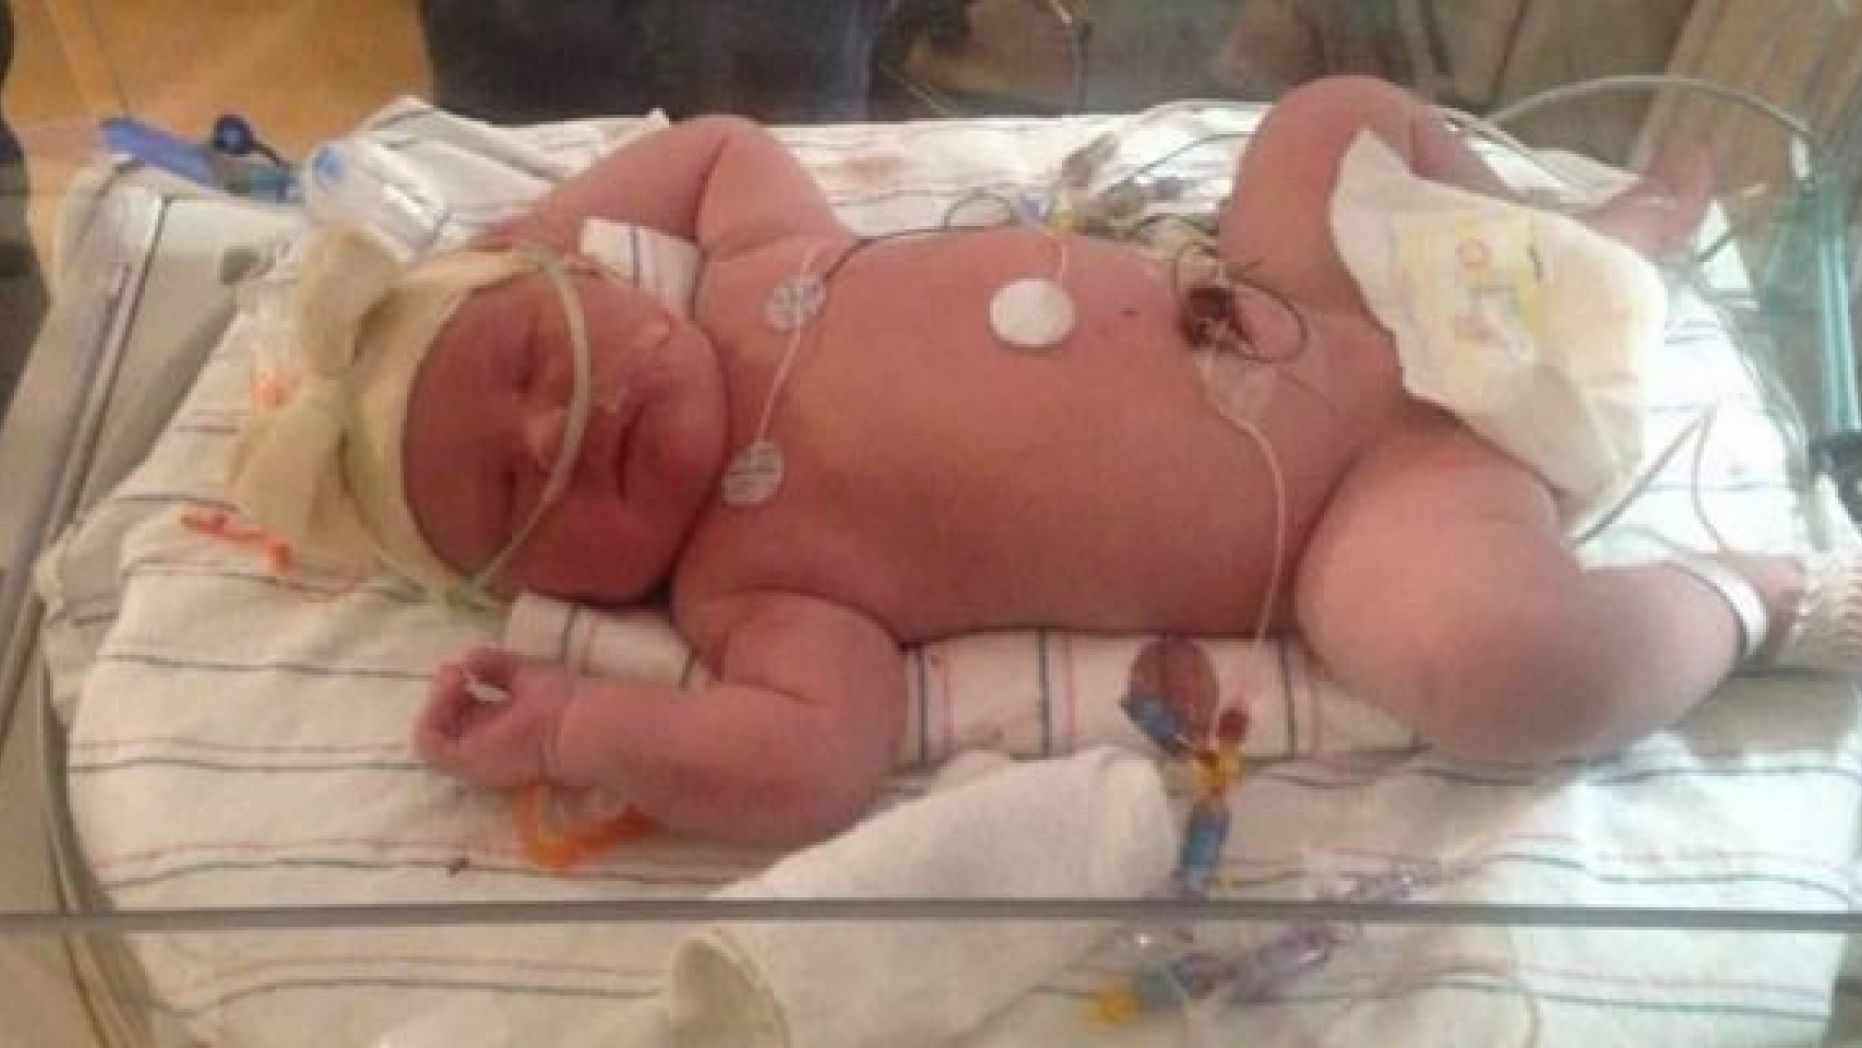 Joy Buckley gave birth to a 15-pound-15-ounce baby at an upstate New York hospital on Tuesday.